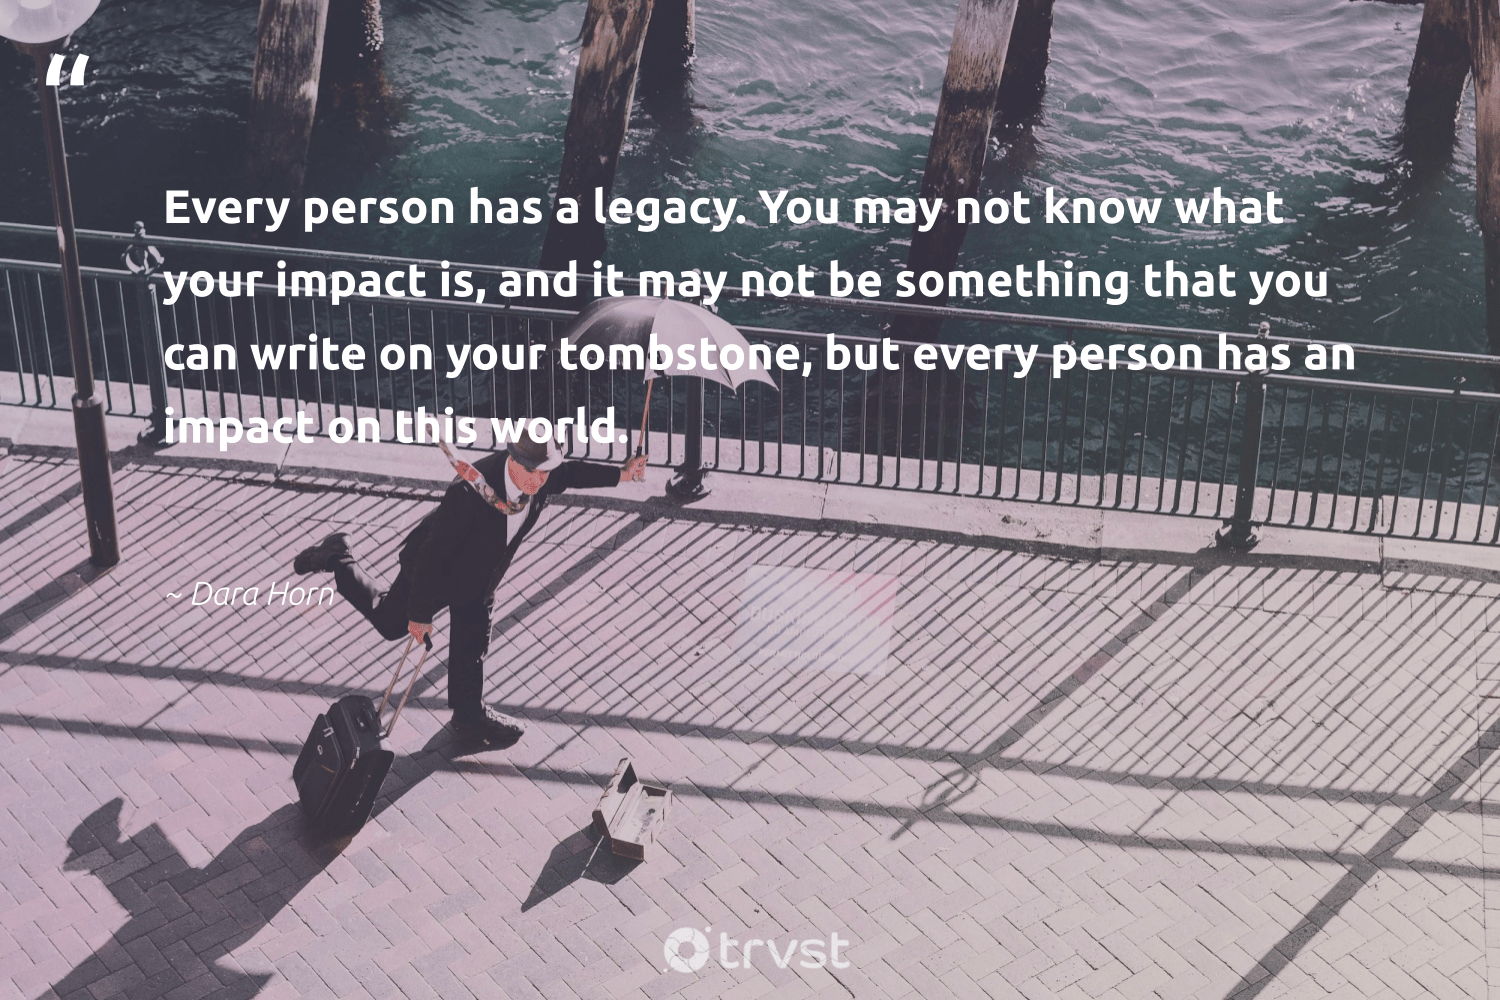 """""""Every person has a legacy. You may not know what your impact is, and it may not be something that you can write on your tombstone, but every person has an impact on this world.""""  - Dara Horn #trvst #quotes #impact #legacy #socialchange #dogood #giveback #dosomething #makeadifference #planetearthfirst #ethicalbusiness #thinkgreen"""